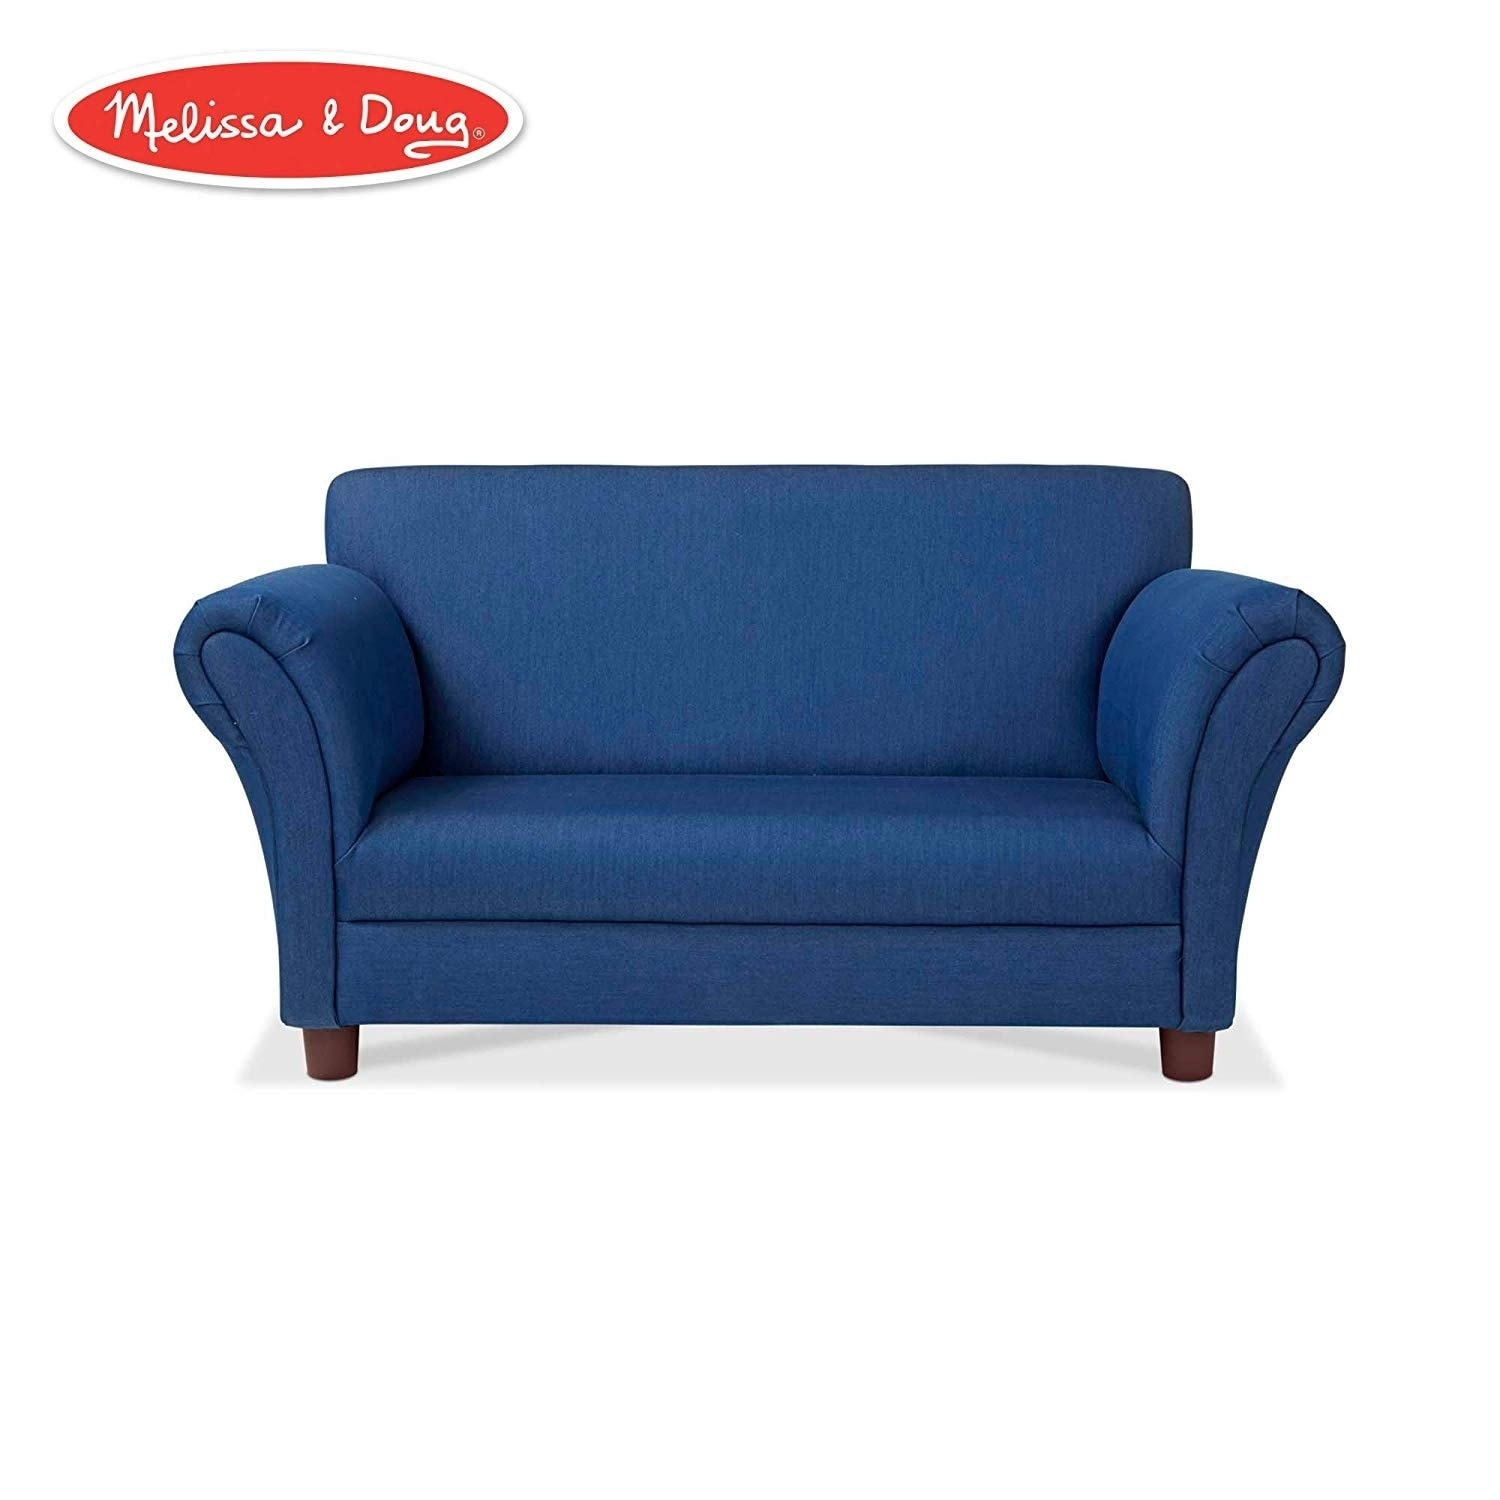 Sofa Blue Denim Children S Furniture